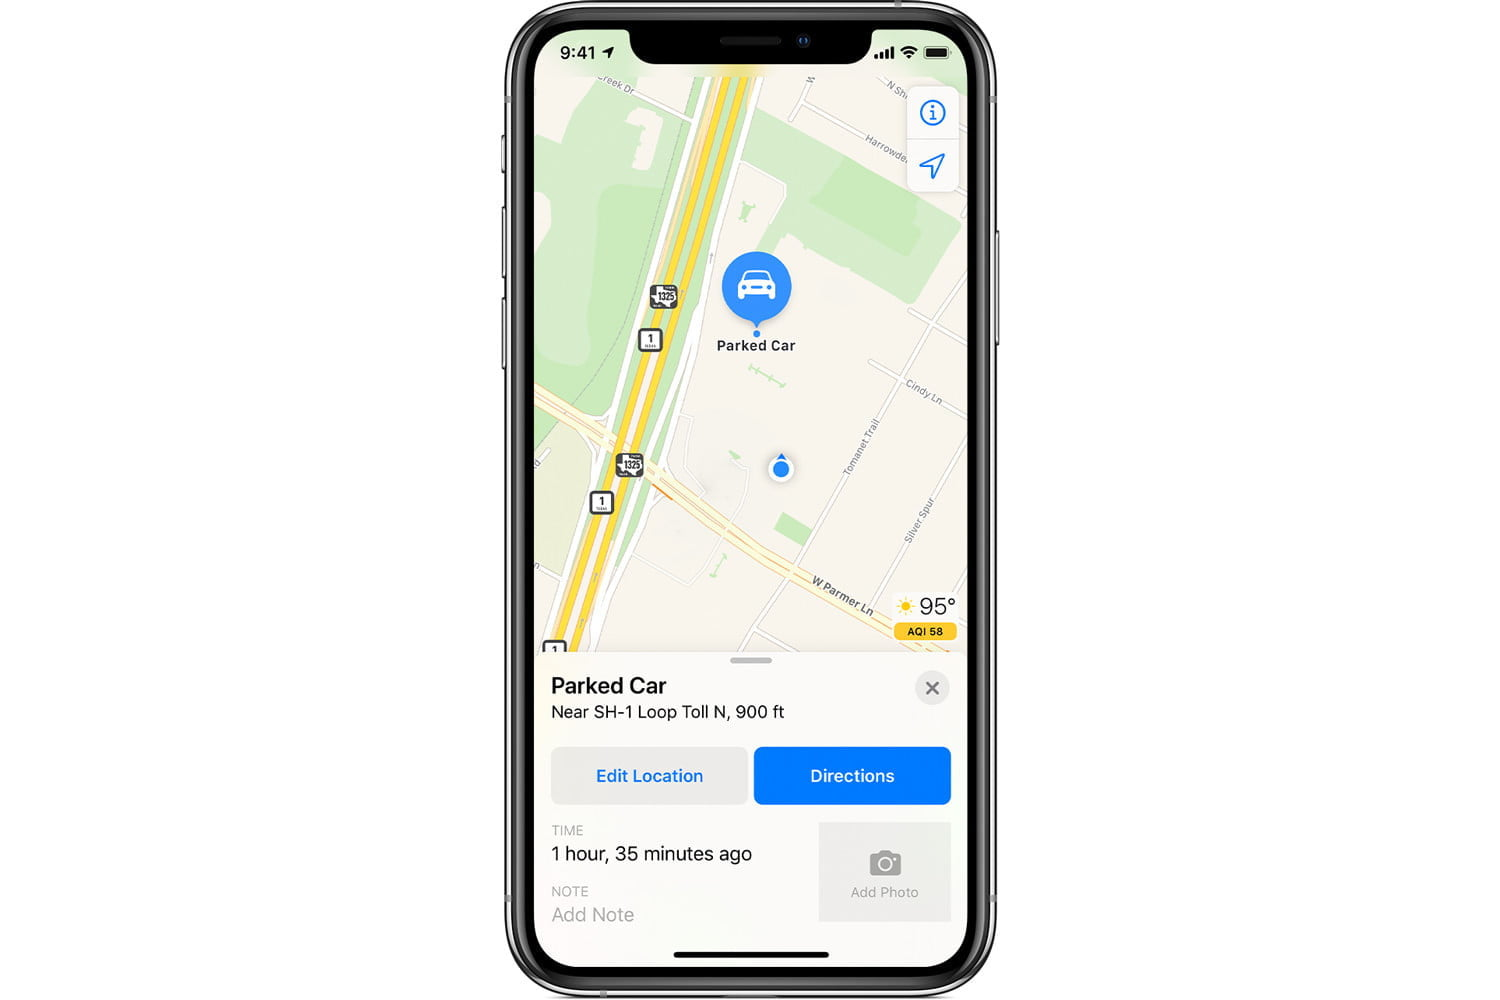 15 Apple Maps Tips That Will Help You Navigate Like a Champ ... on all iphone apps, standard iphone apps, time iphone apps, fun iphone apps, large iphone apps, delete iphone apps, orange iphone apps, home iphone apps, pink iphone apps,